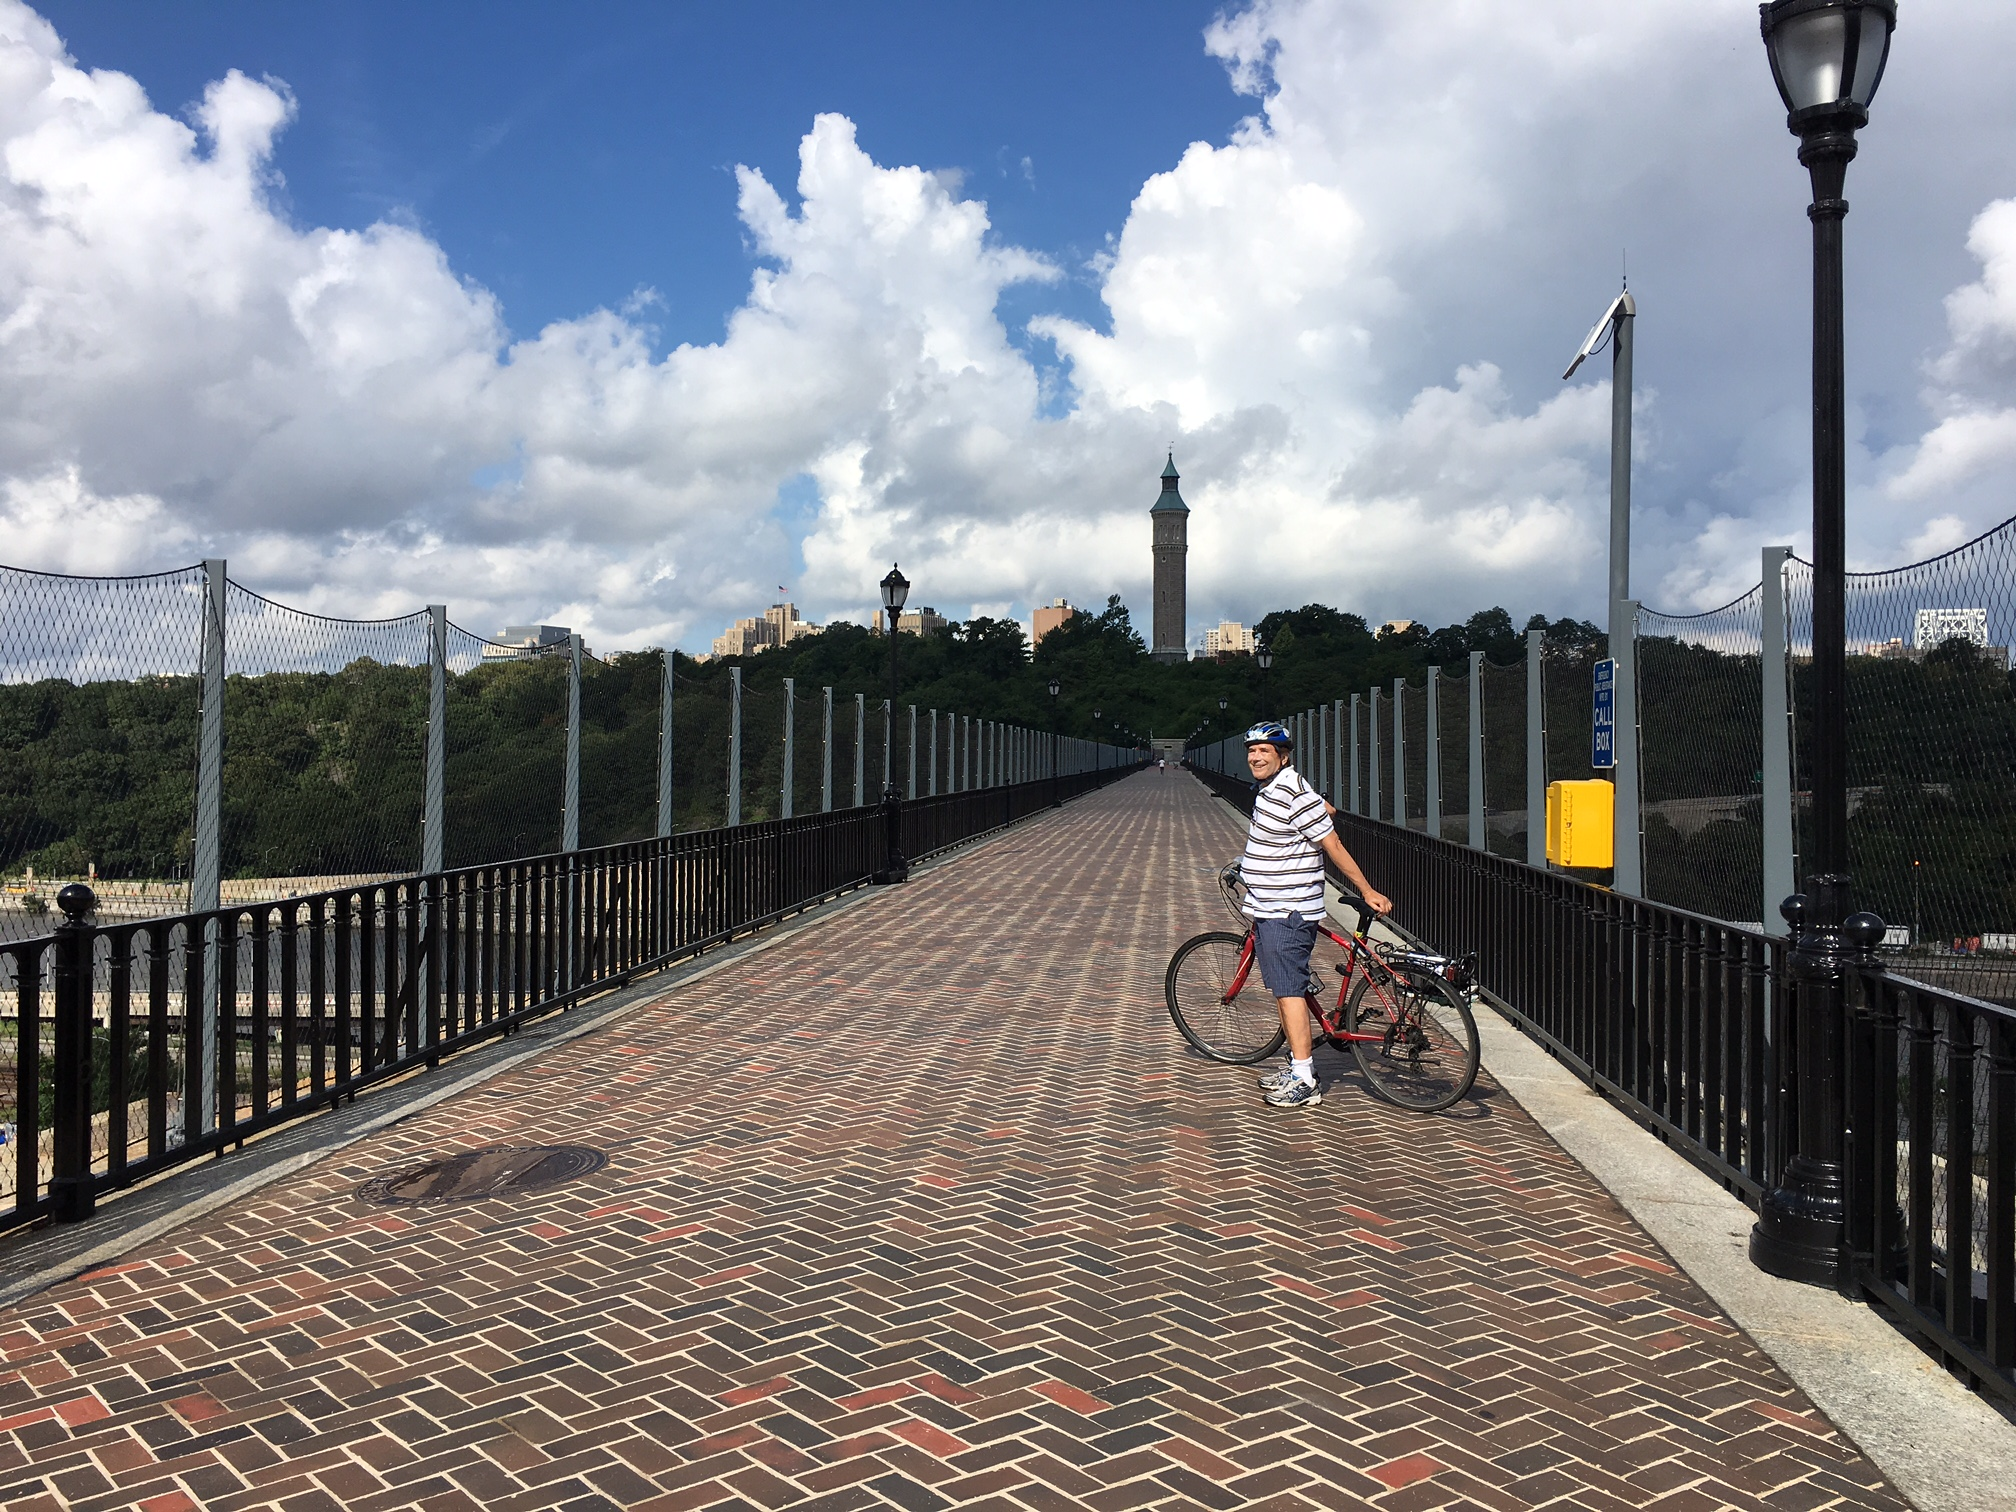 John on the High Bridge in the Bronx August 21, 2016